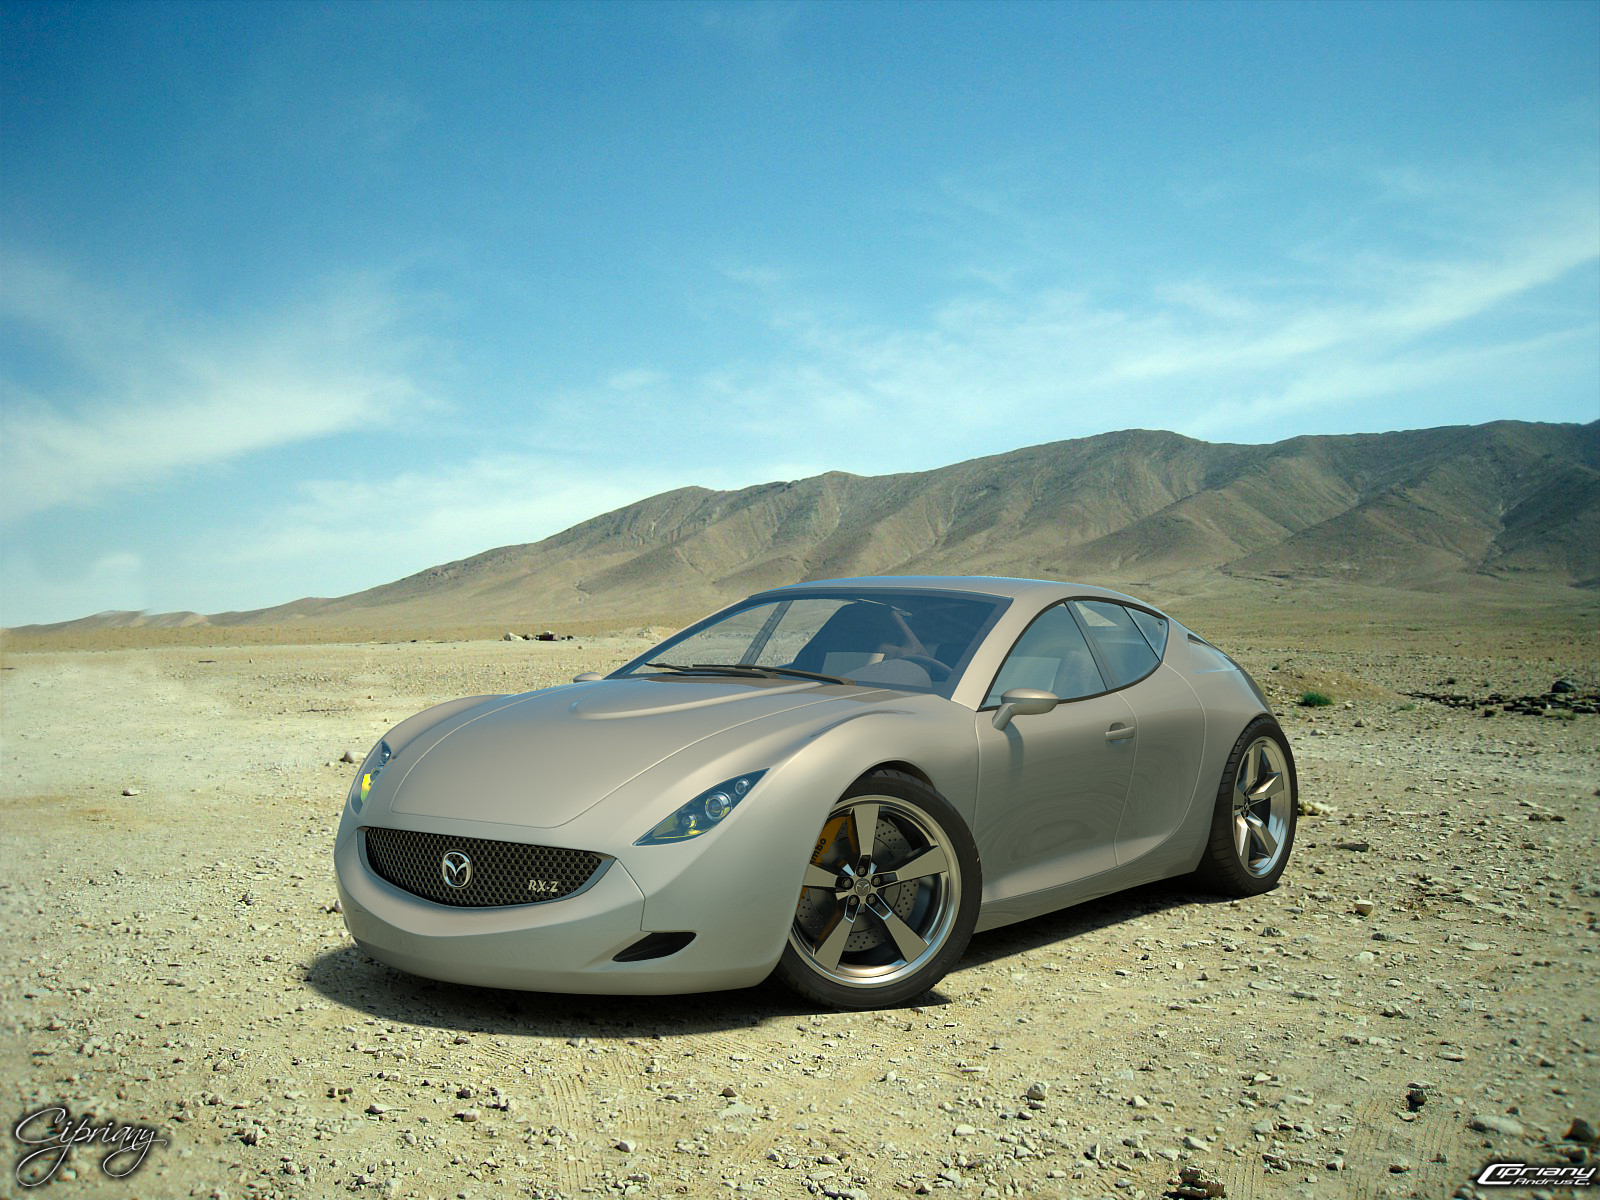 Mazda RX-Z concept 23 by cipriany